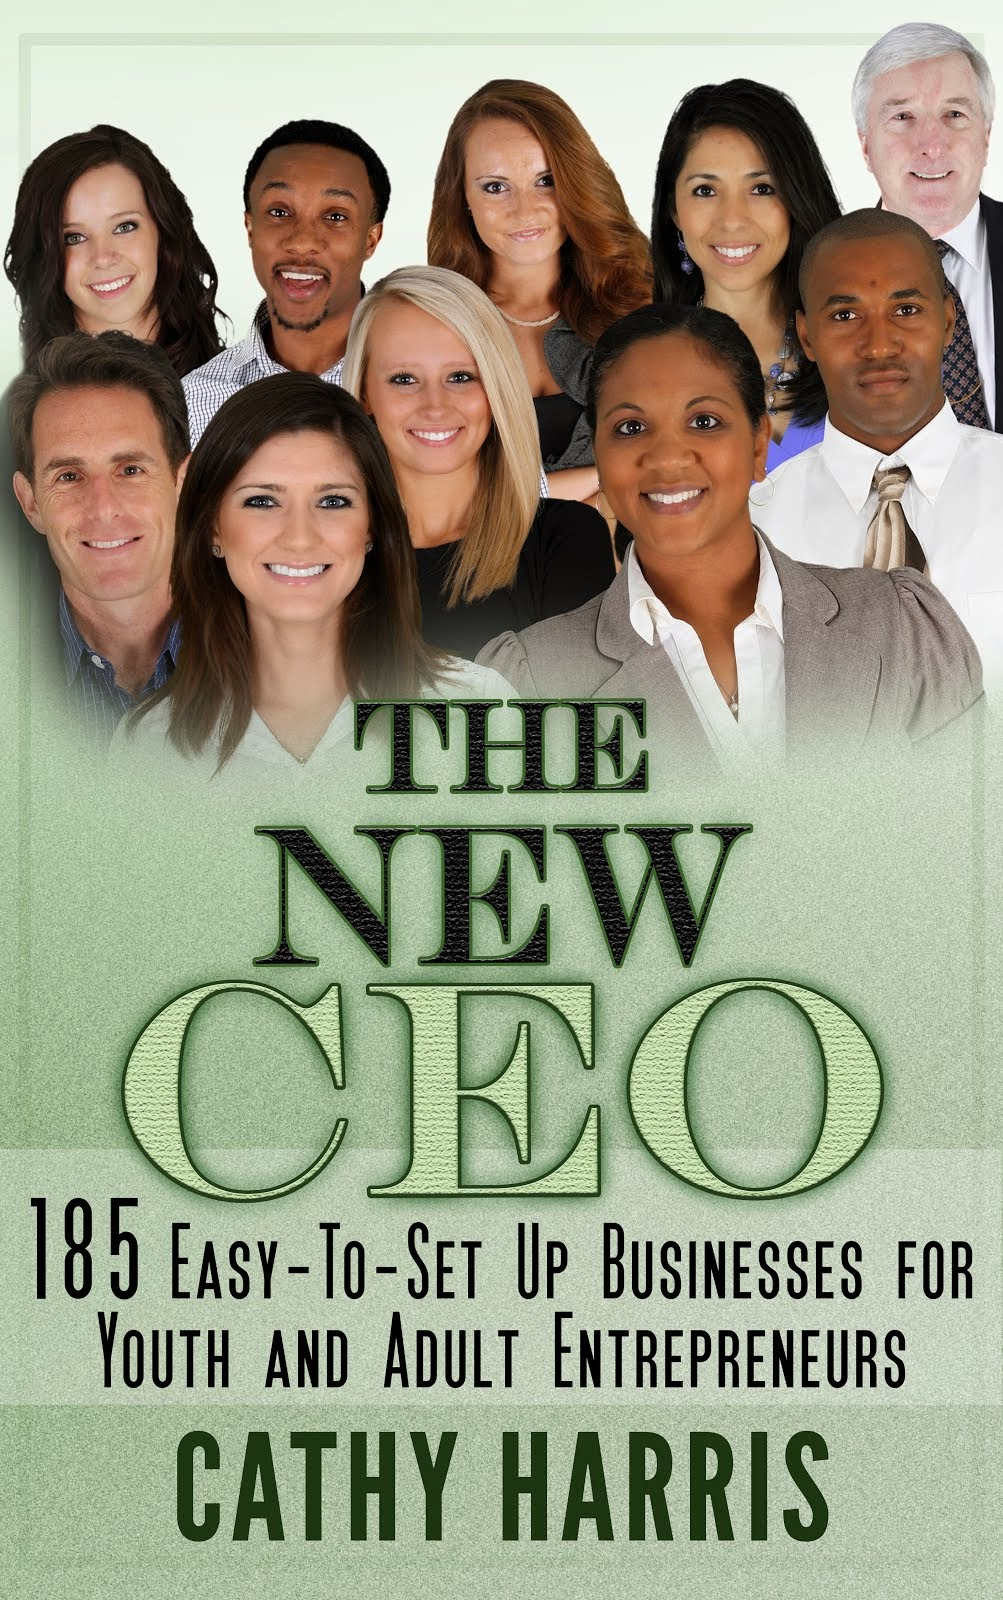 New Business Book Available as E-book and Paperback (Coming Soon as Audiobook)